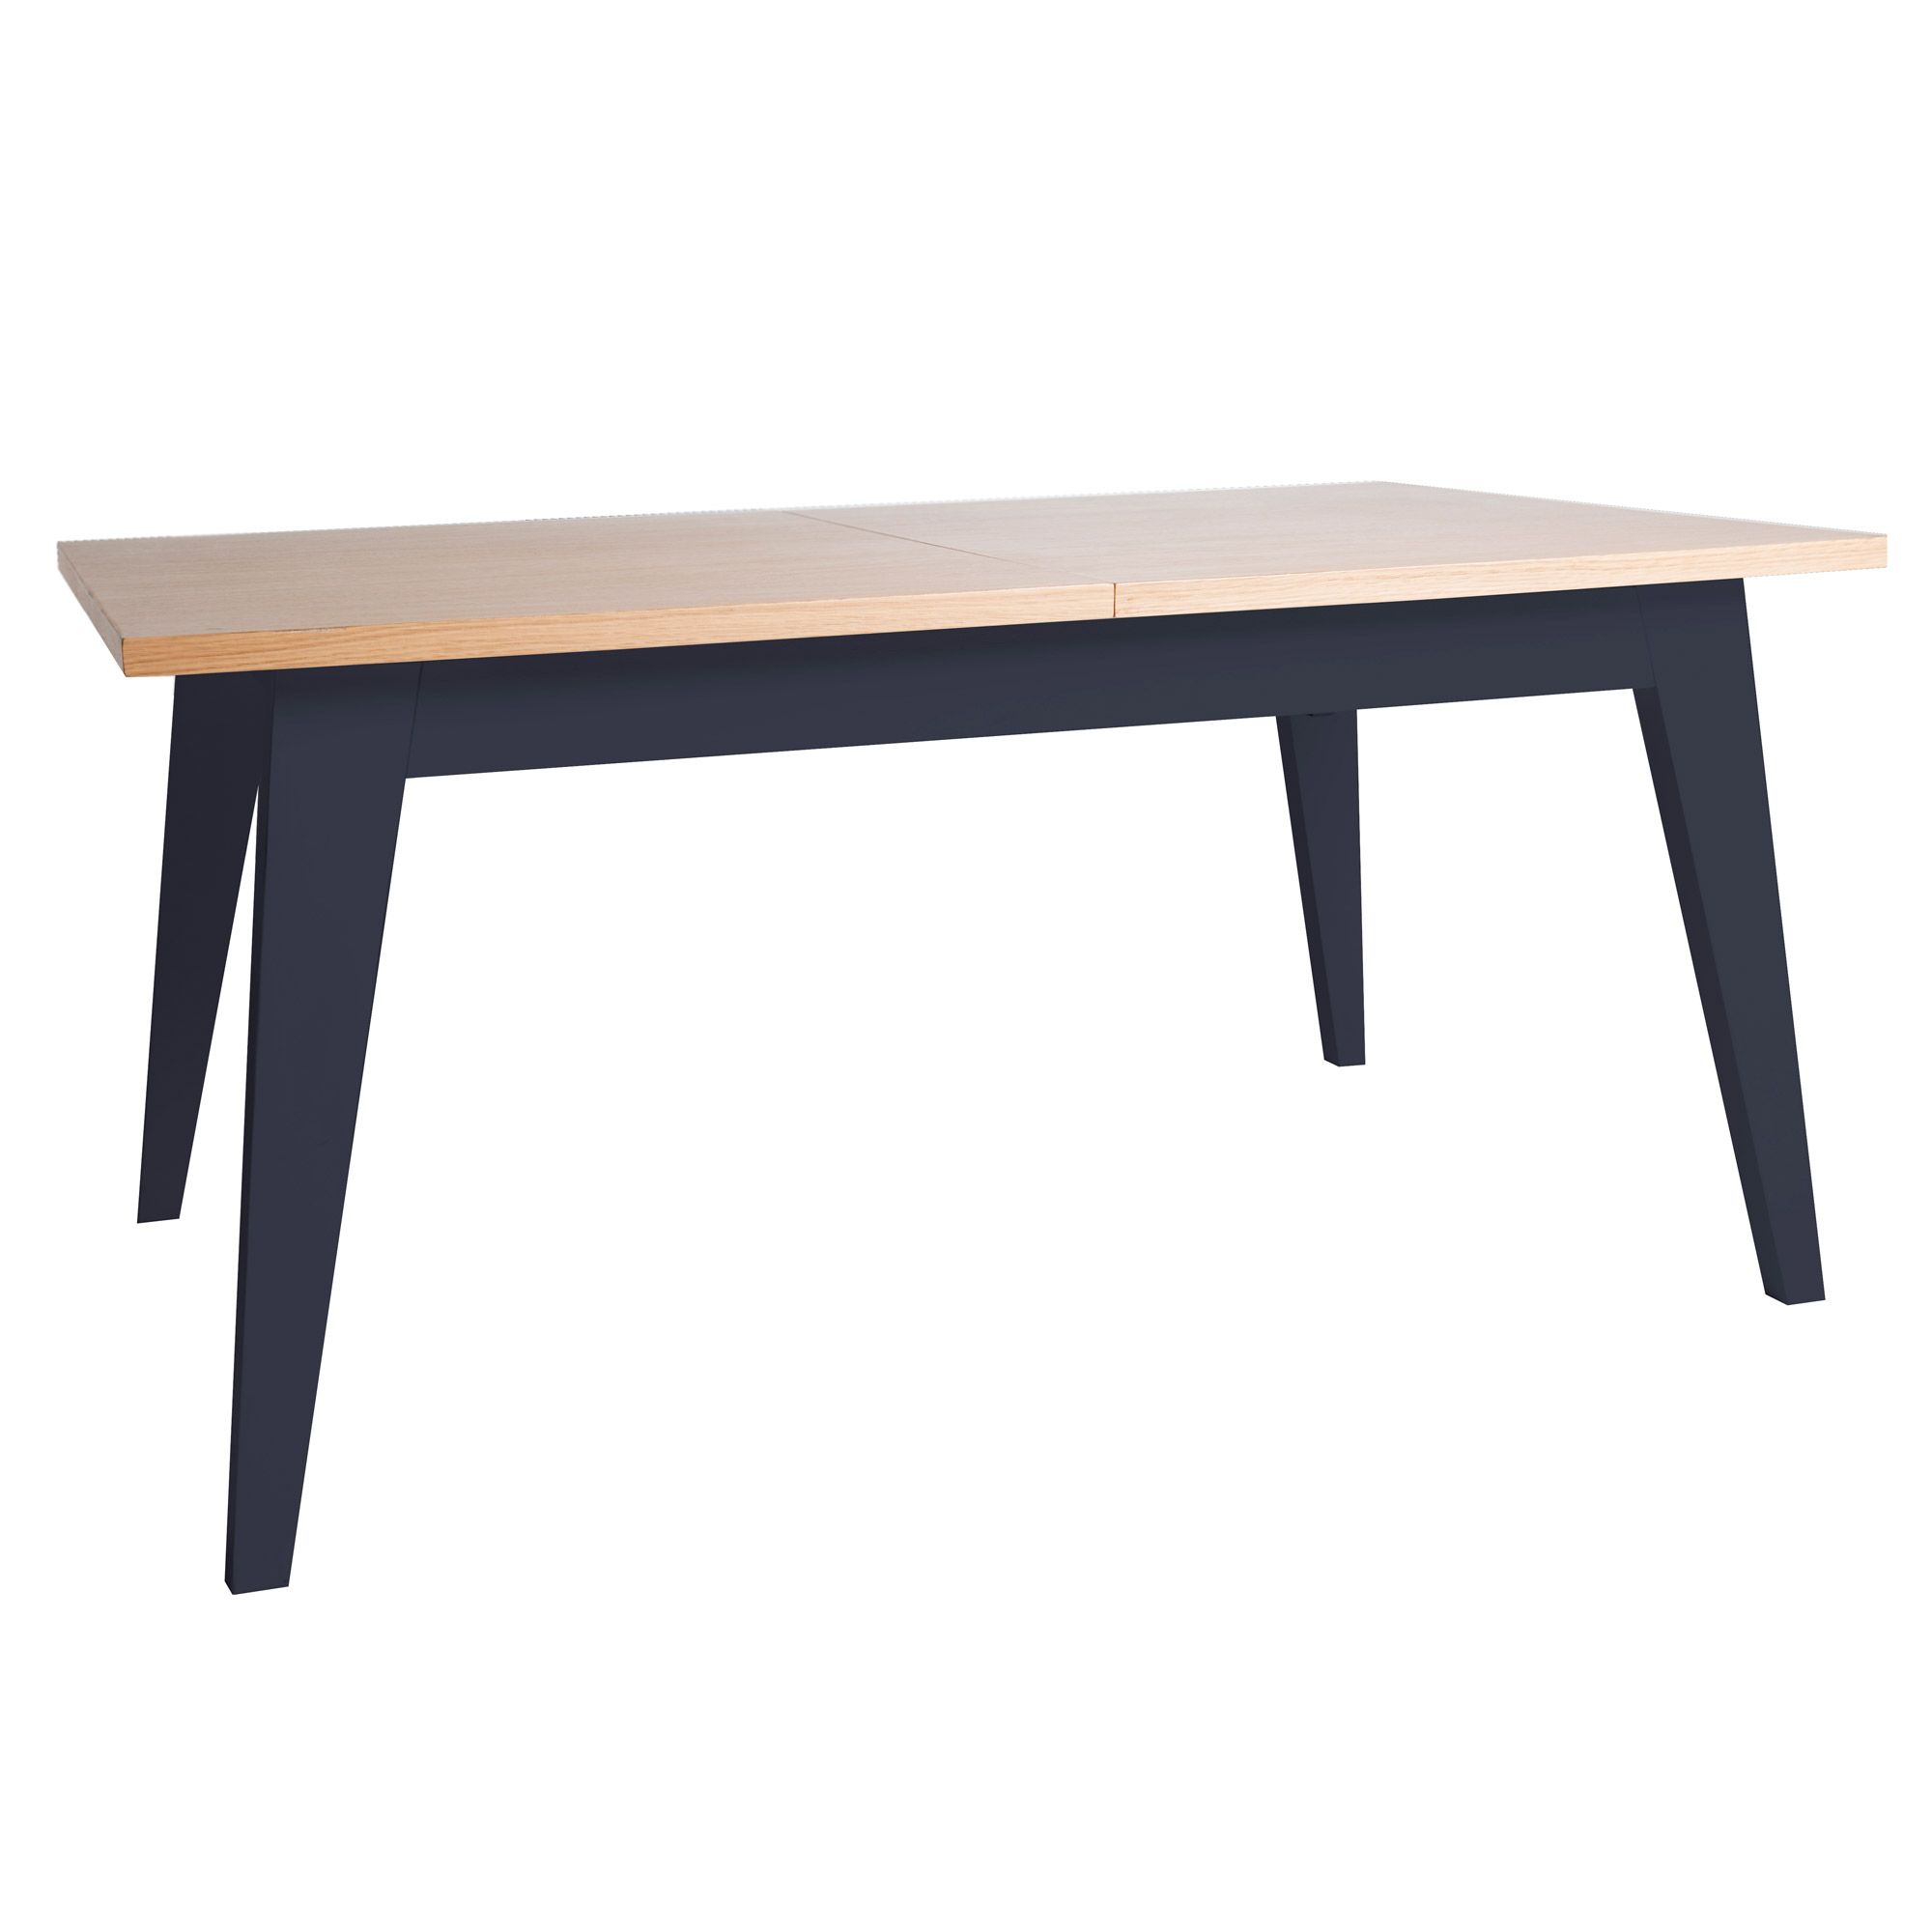 Meuble Milo Alinea Milo Tables Rectangulaires Tables Chaises Table De Repas